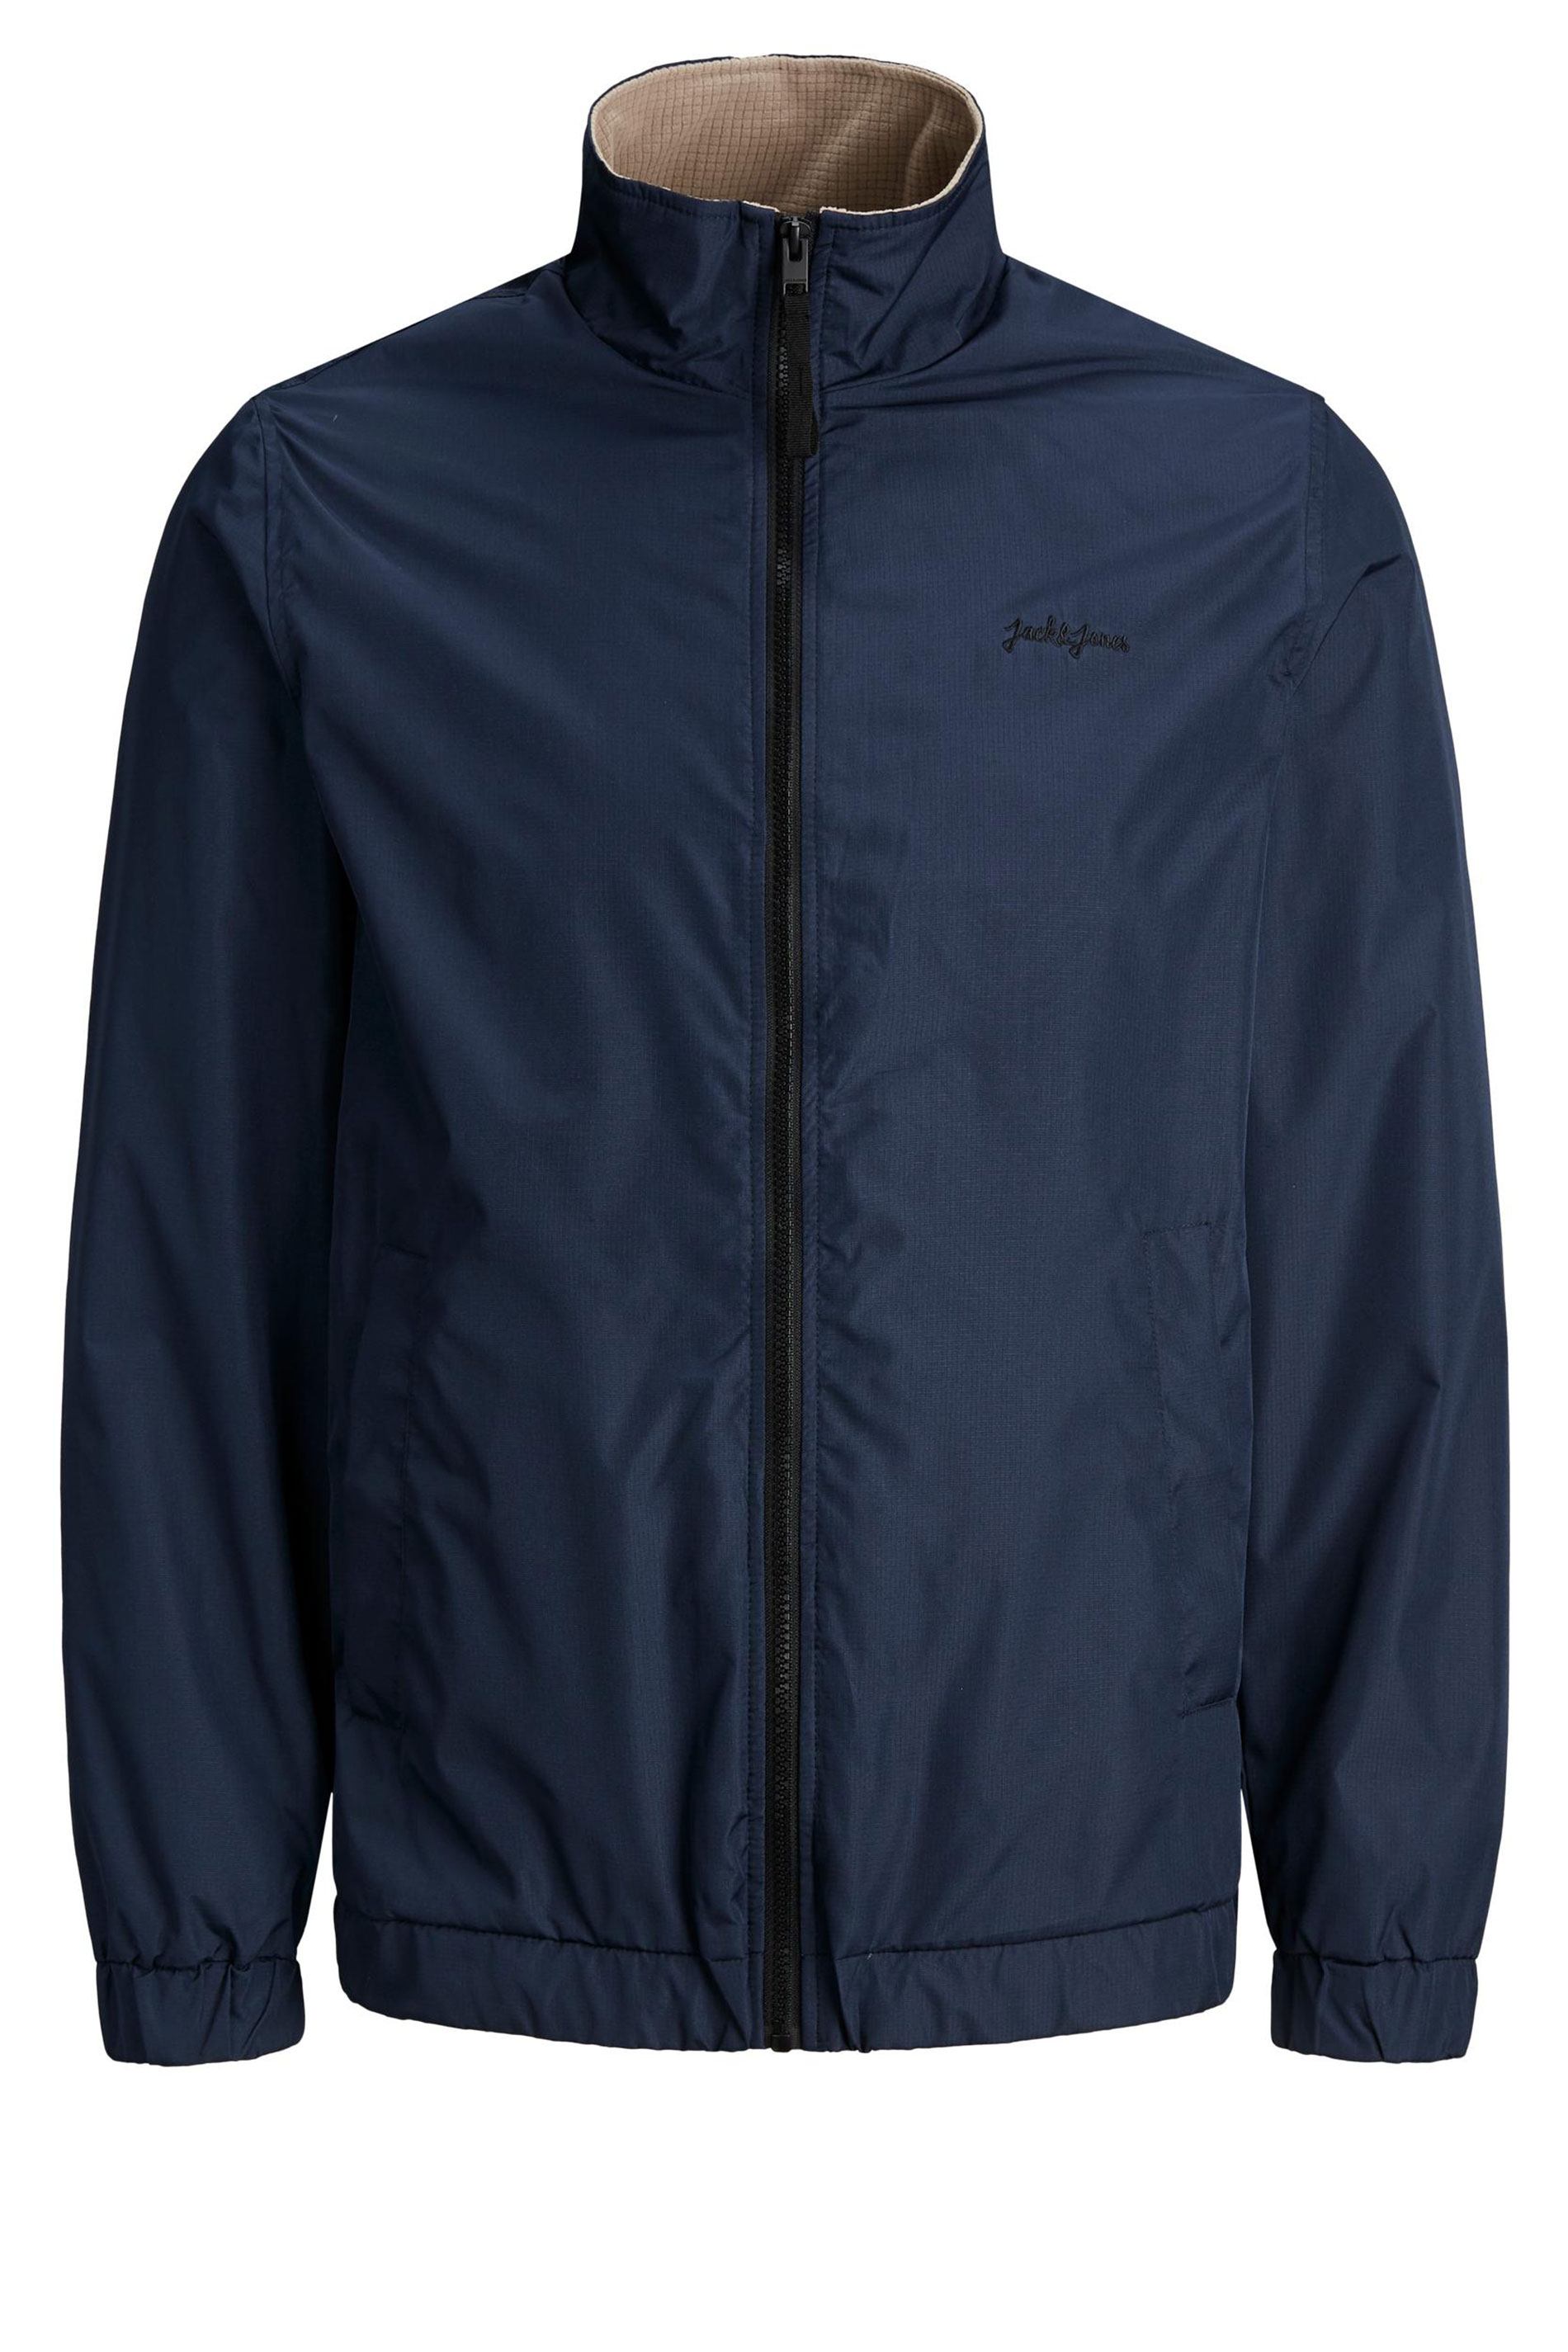 JACK & JONES Navy Cooper Jacket